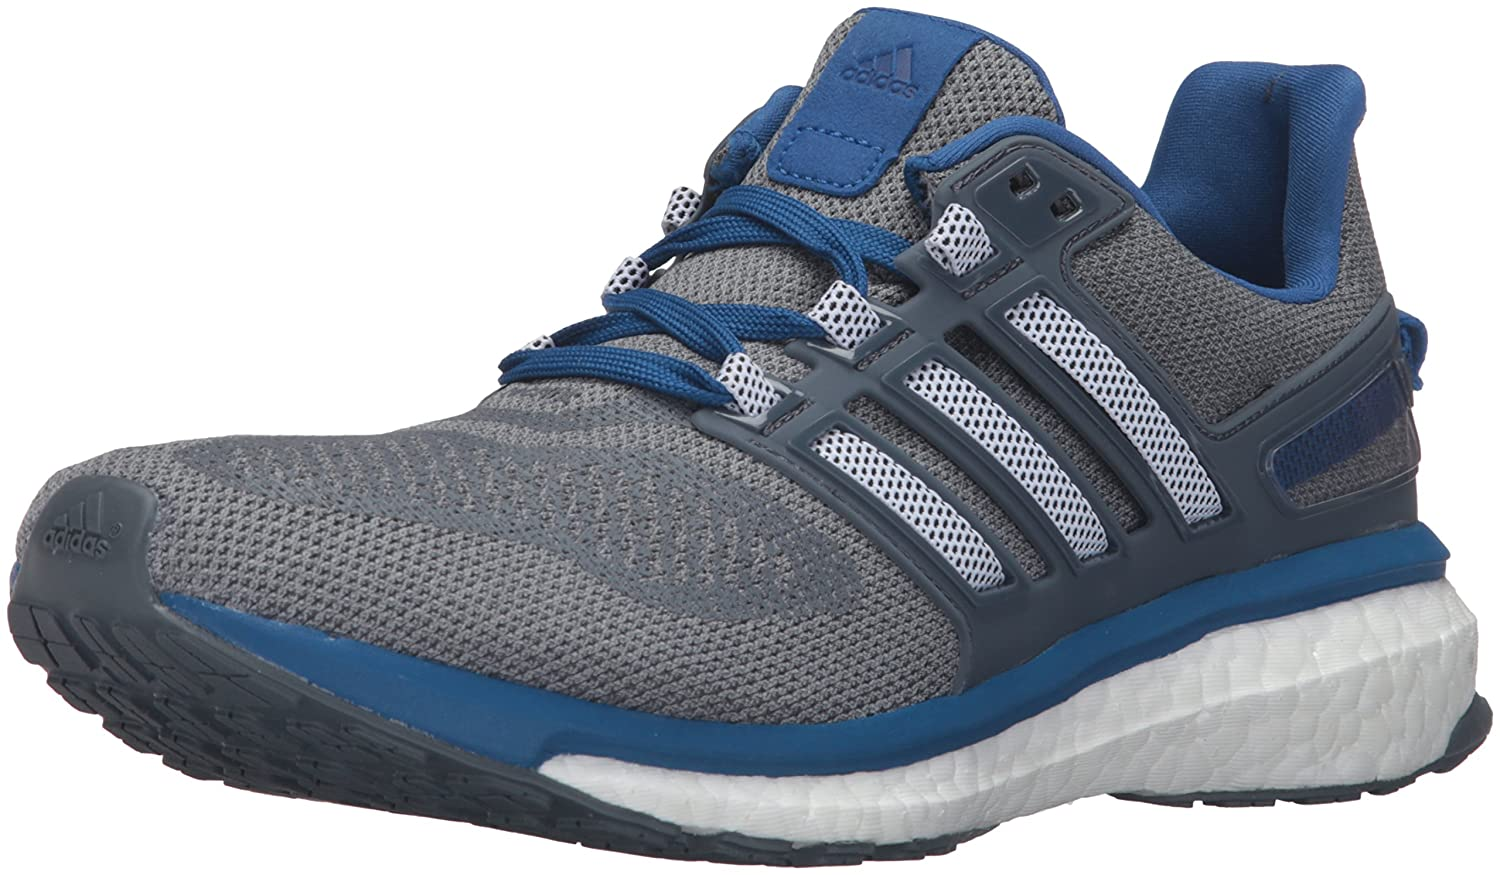 new arrival acb04 8203e Amazon.com  adidas Performance Mens Energy Boost 3 M Running Shoe  Road  Running